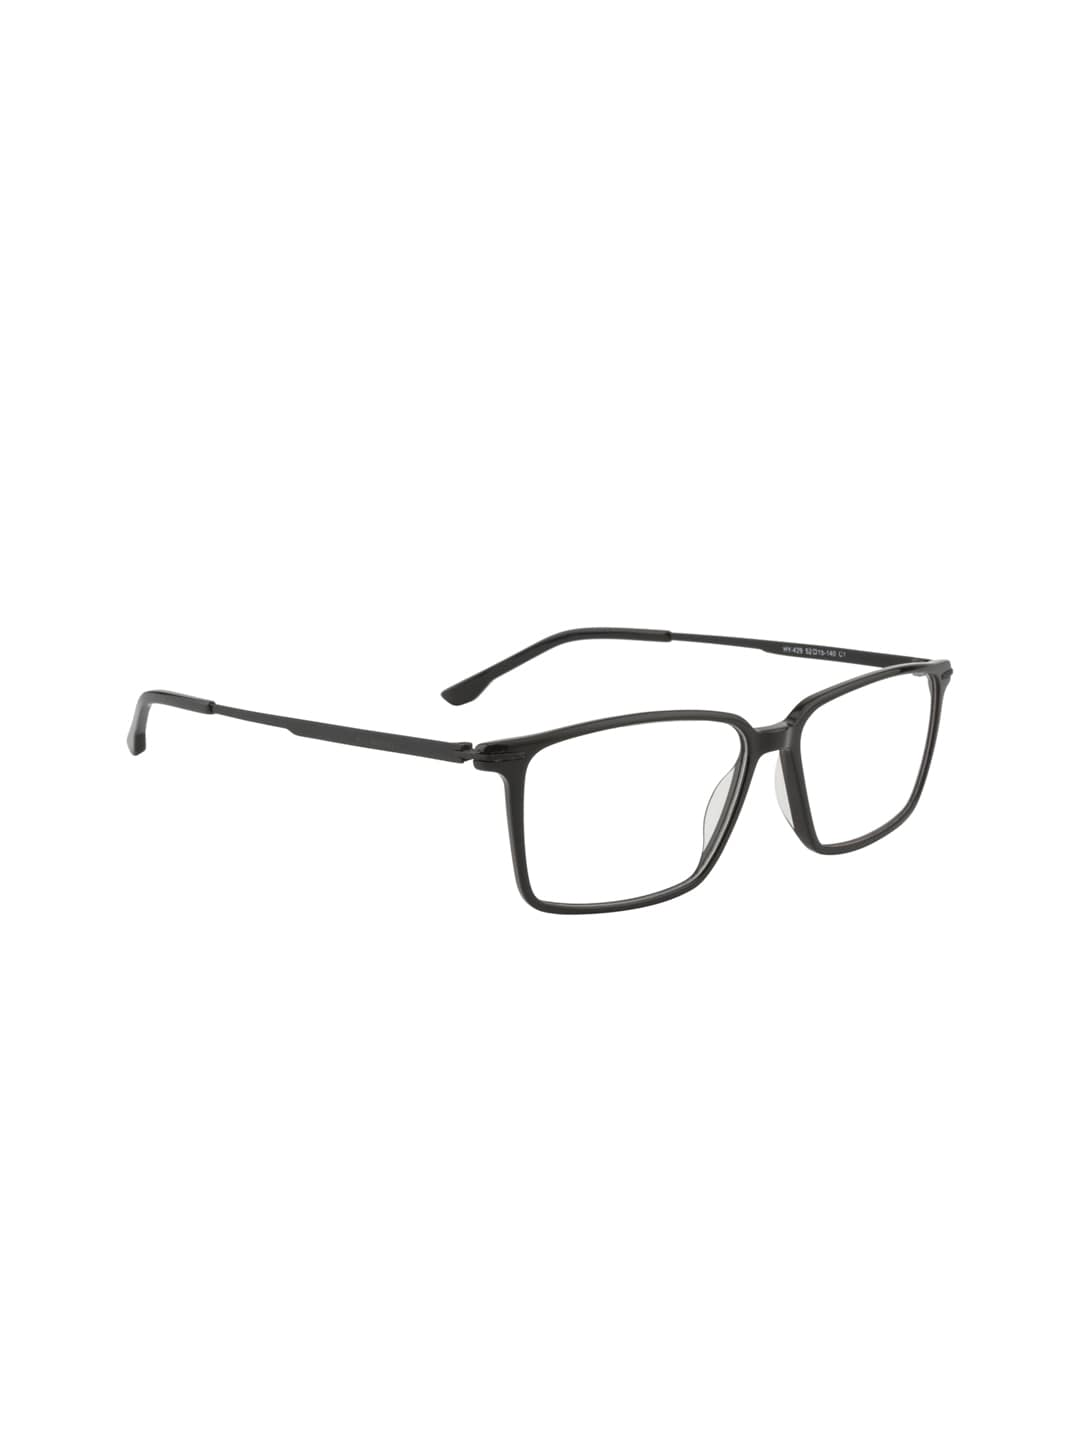 Ted Smith Frames - Buy Ted Smith Frames online in India